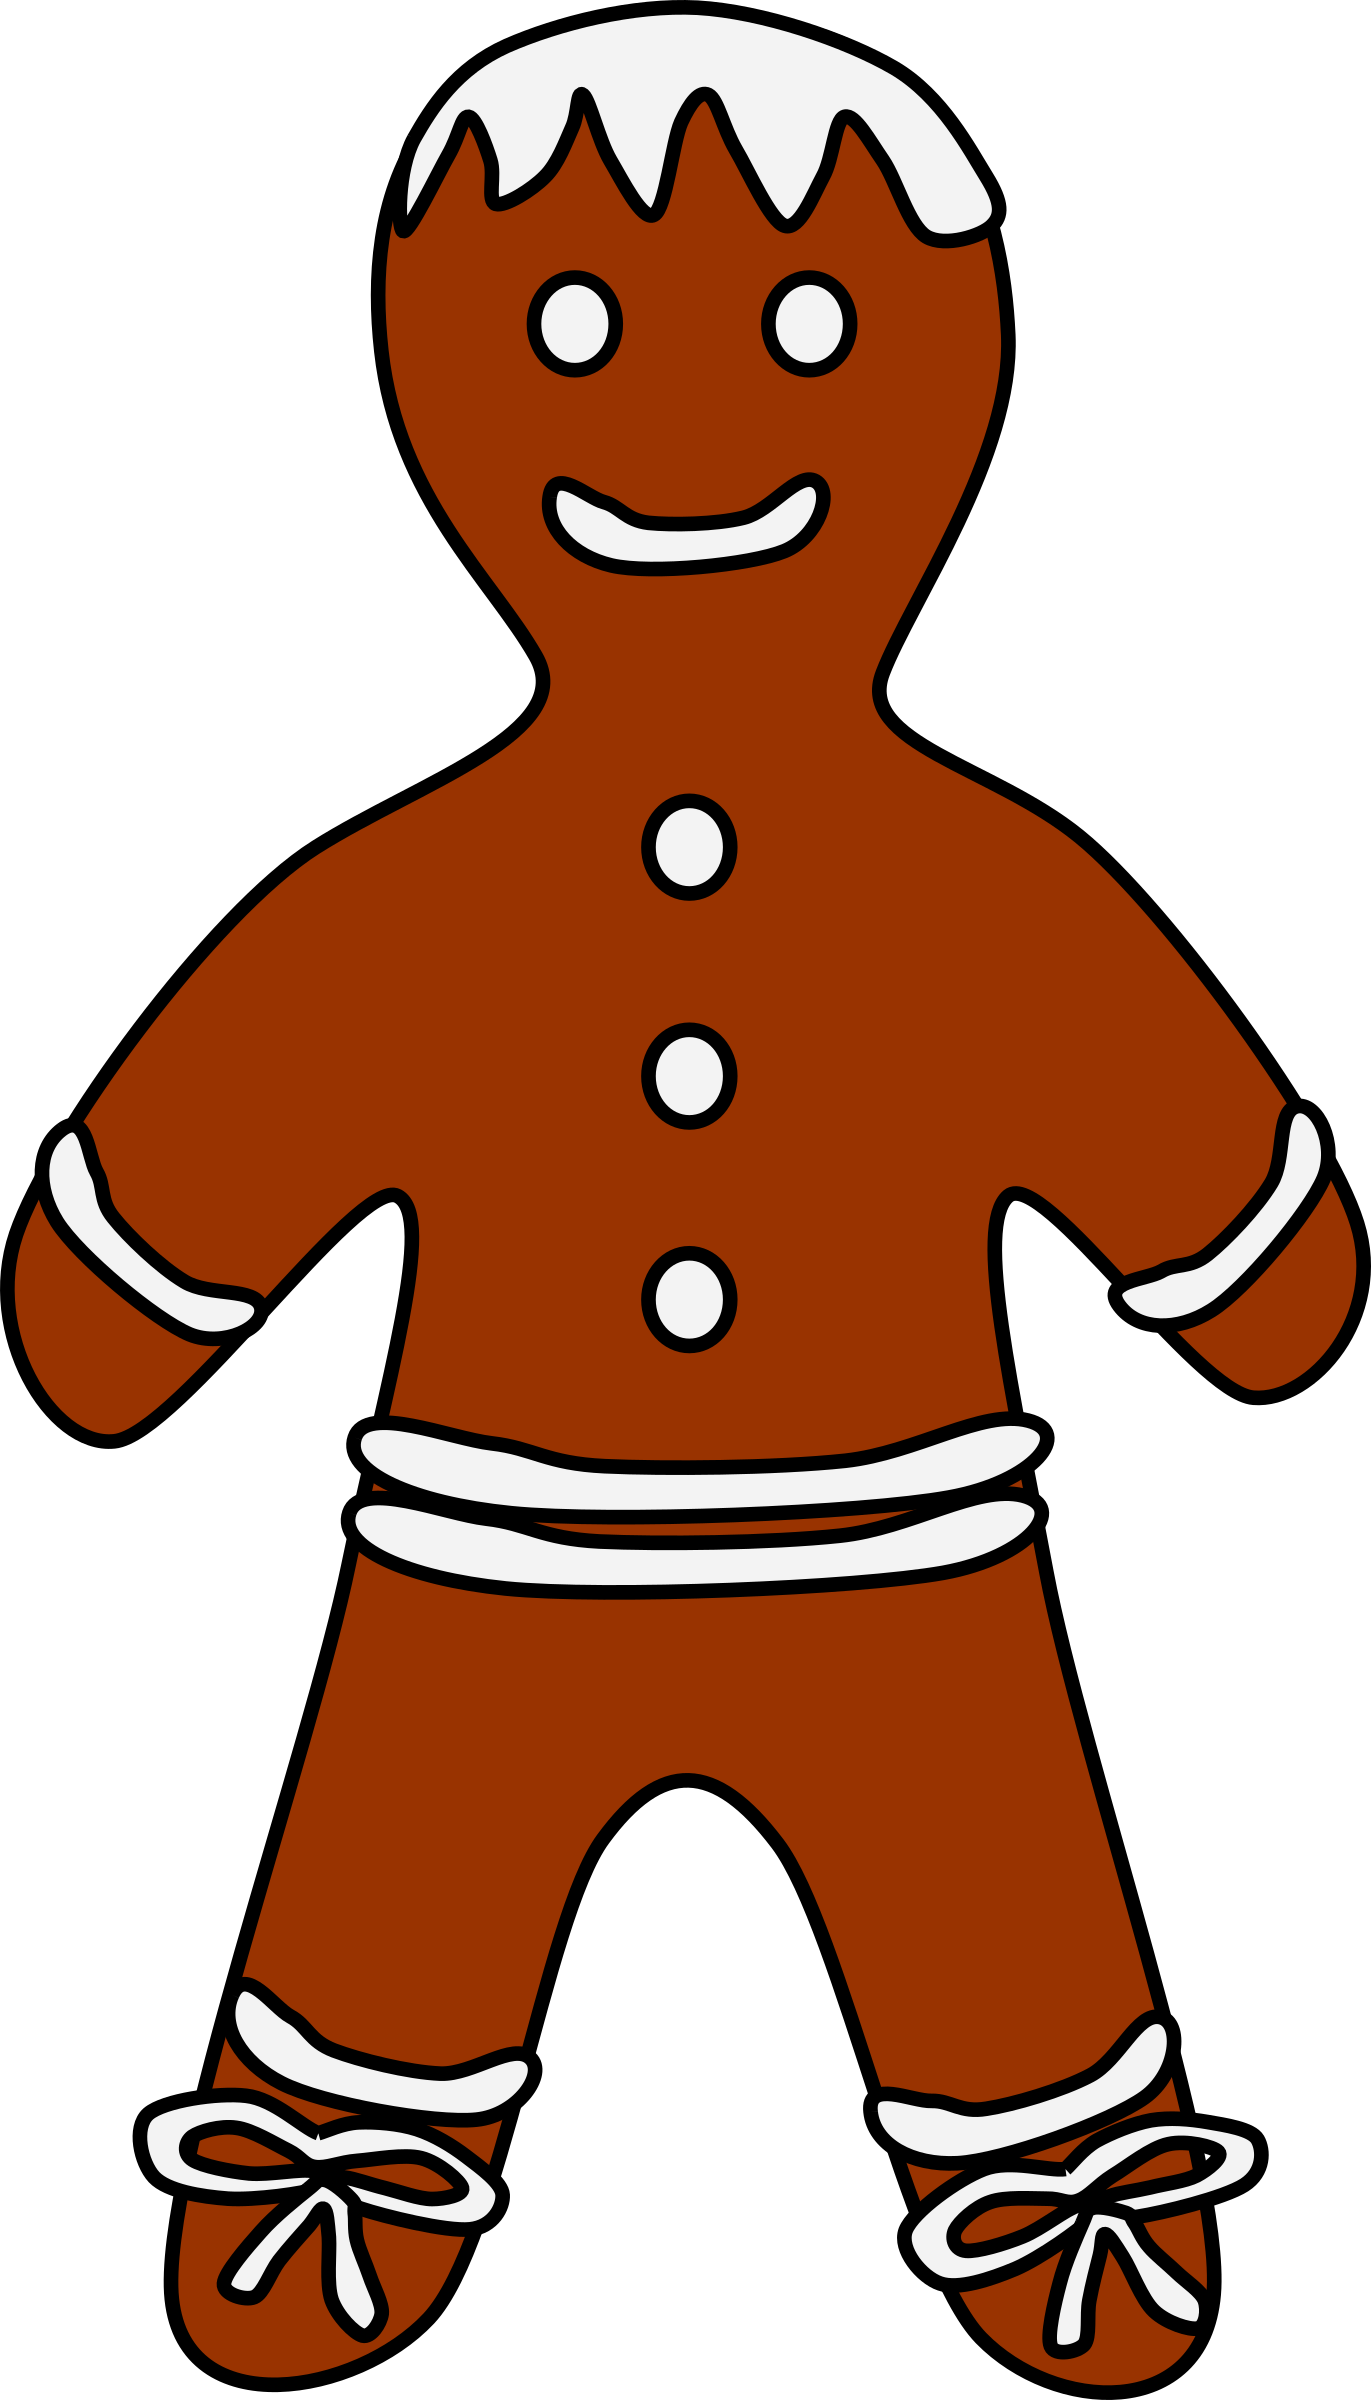 Gingerbread Boy by barnheartowl